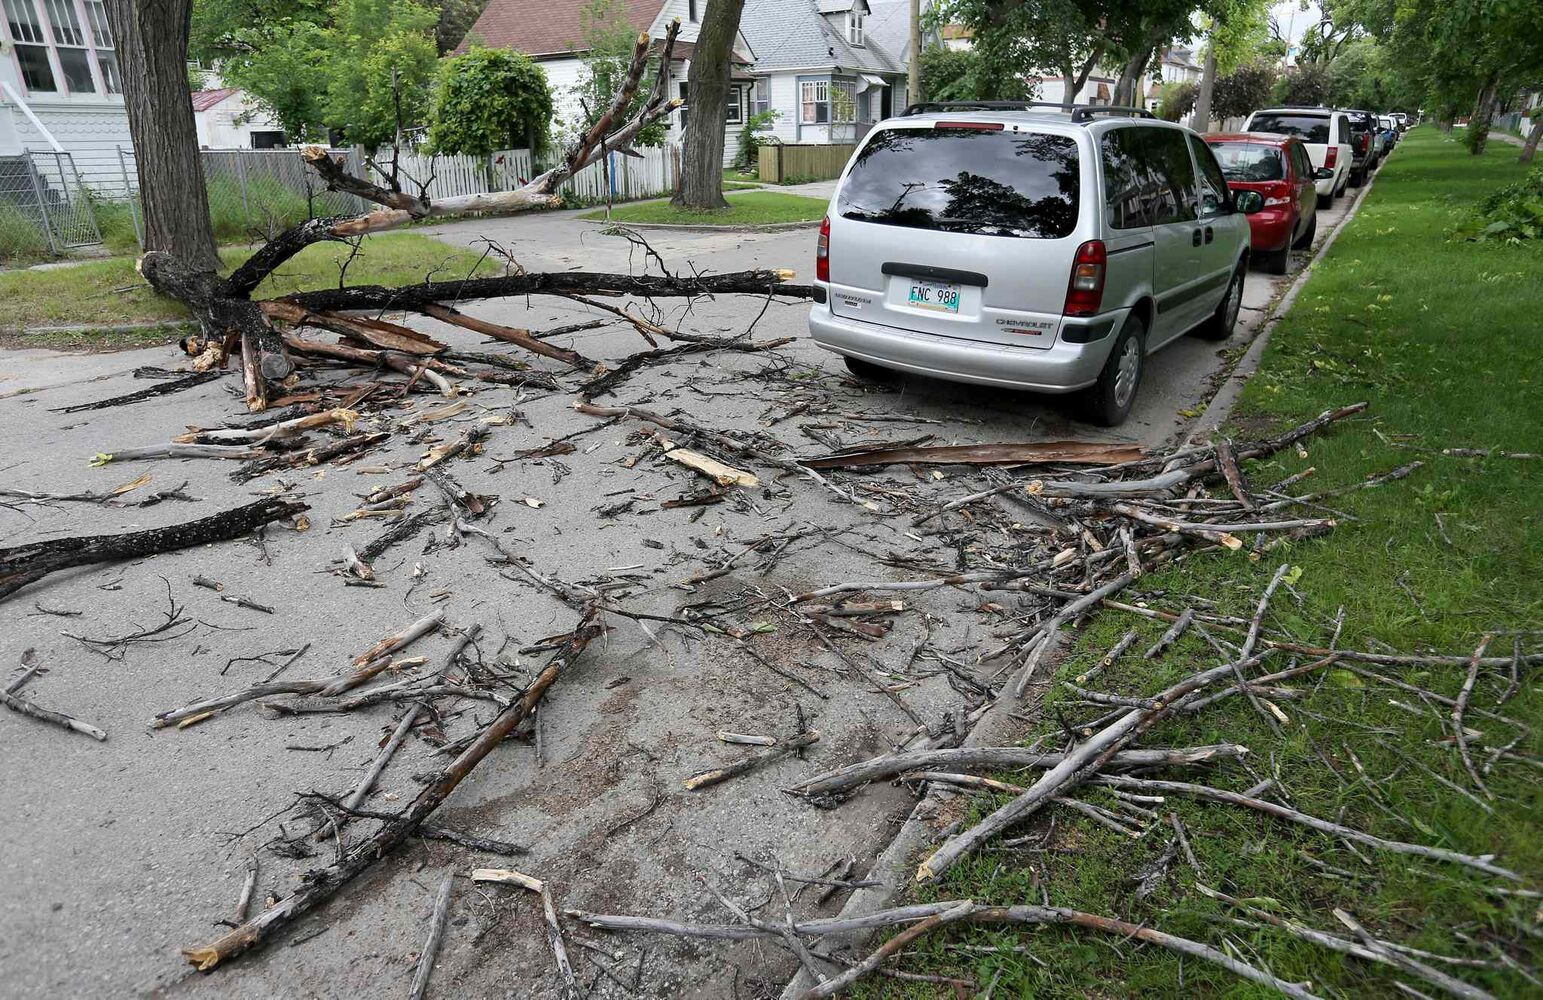 A large tree branch lays across Aberdeen Avenue after hitting a van between Salter and Charles after strong winds overnight, Sunday, June 29, 2014.  (Trevor Hagan / Winnipeg Free Press)